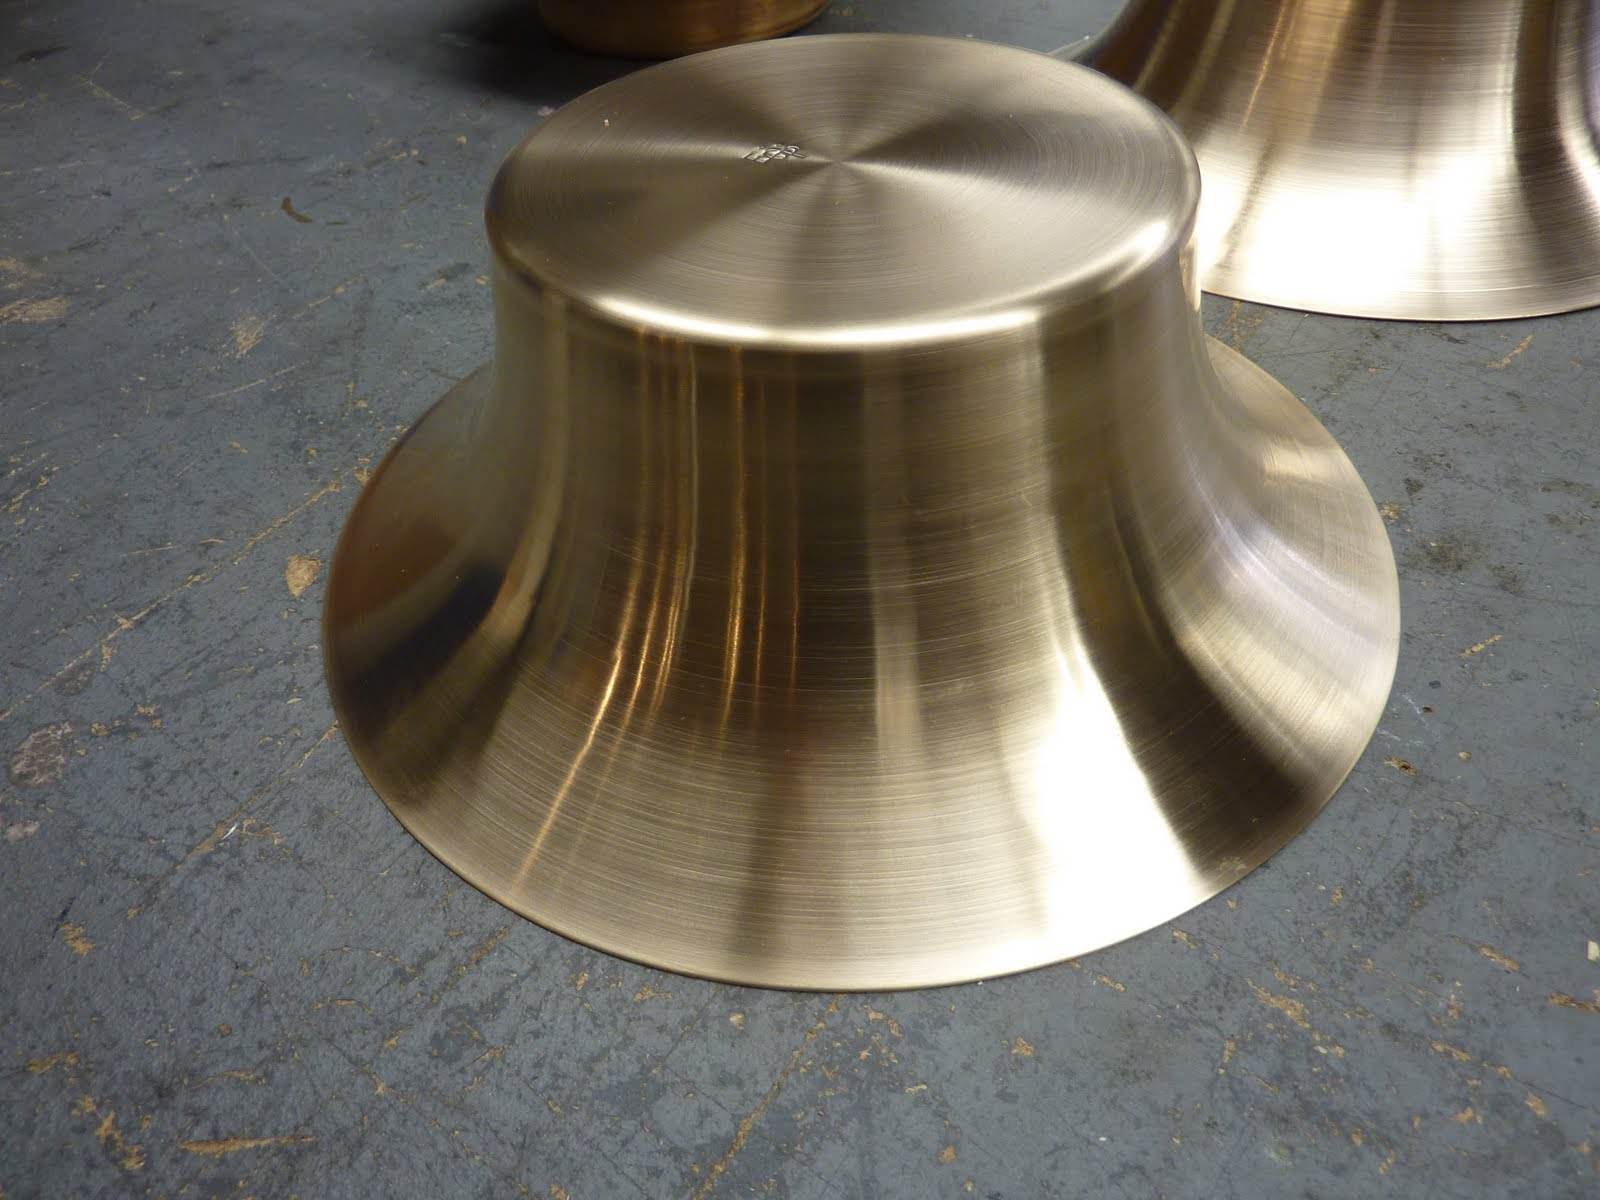 004933592c4dade1414f533b286d84c120150329130744 - What is metal spinning process